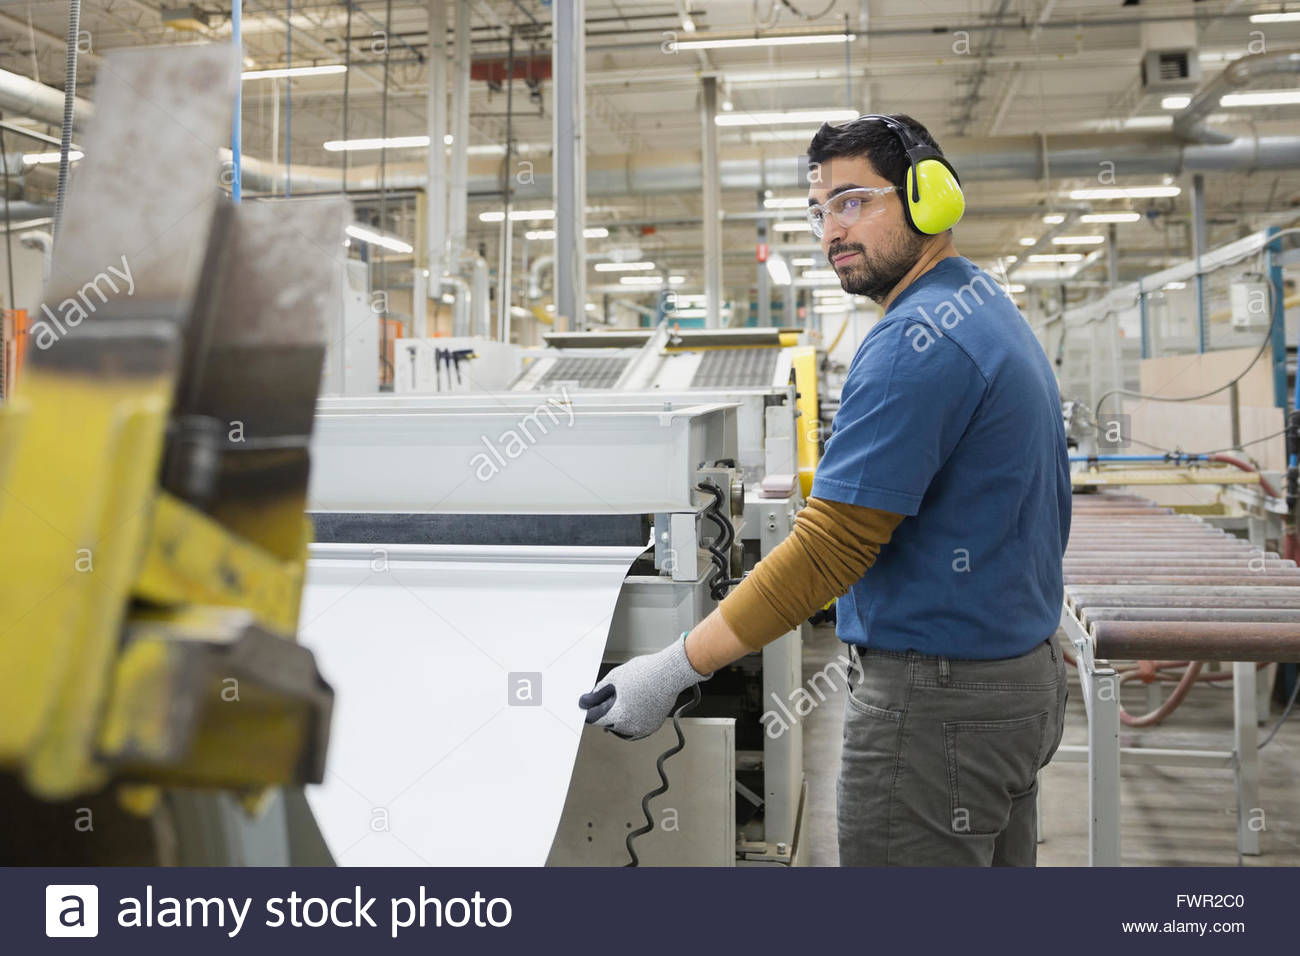 Worker extracting steel sheet from machine in factory - Stock Image